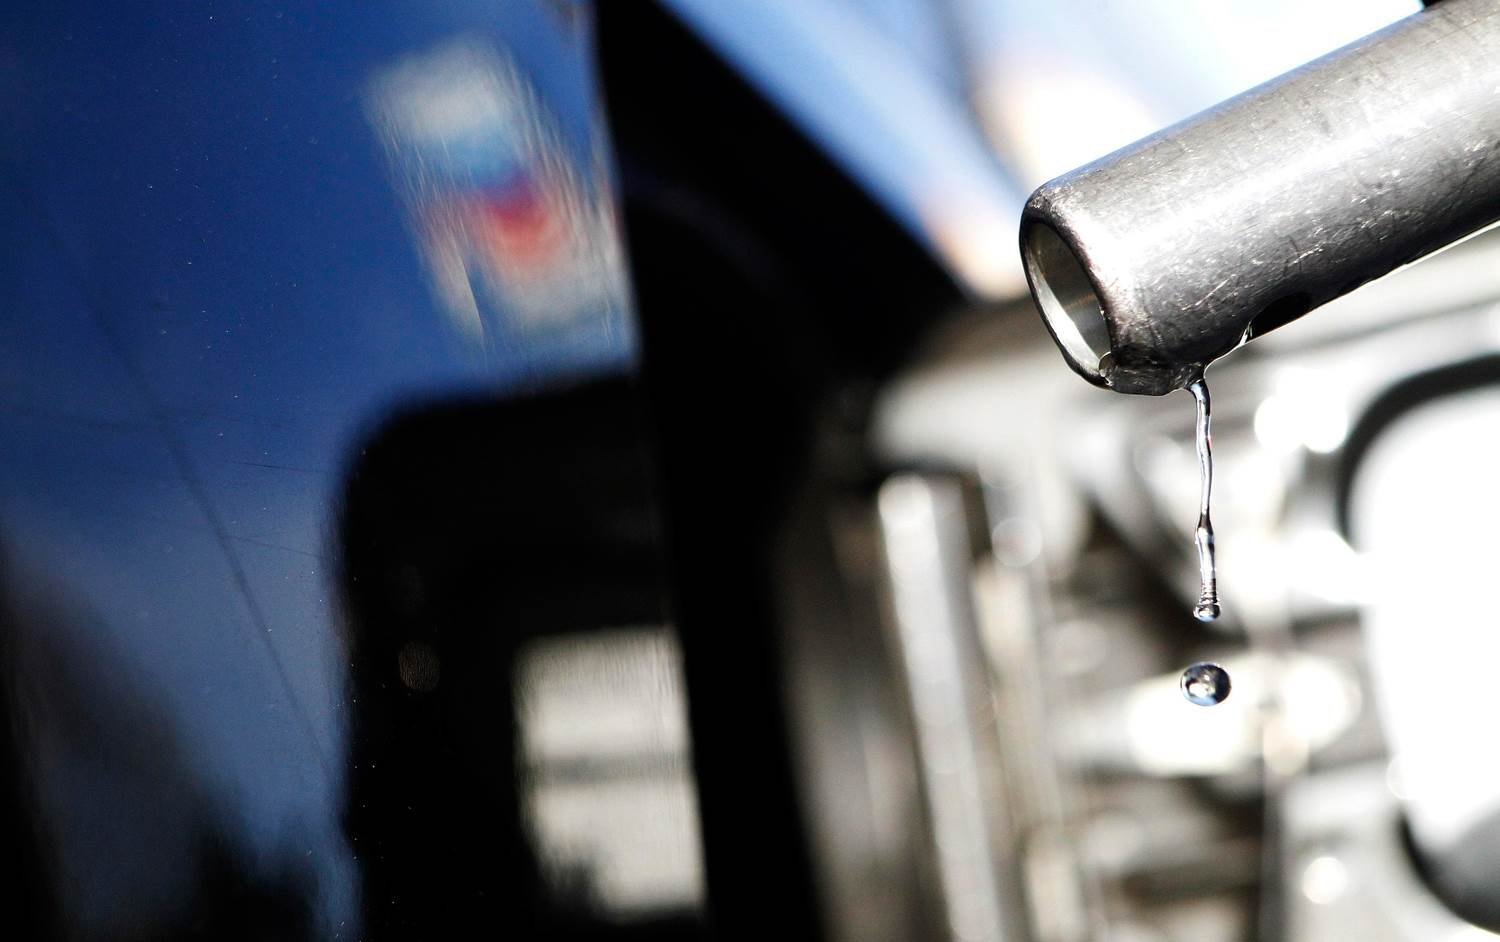 Massachusetts gas prices down 3 cents per gallon